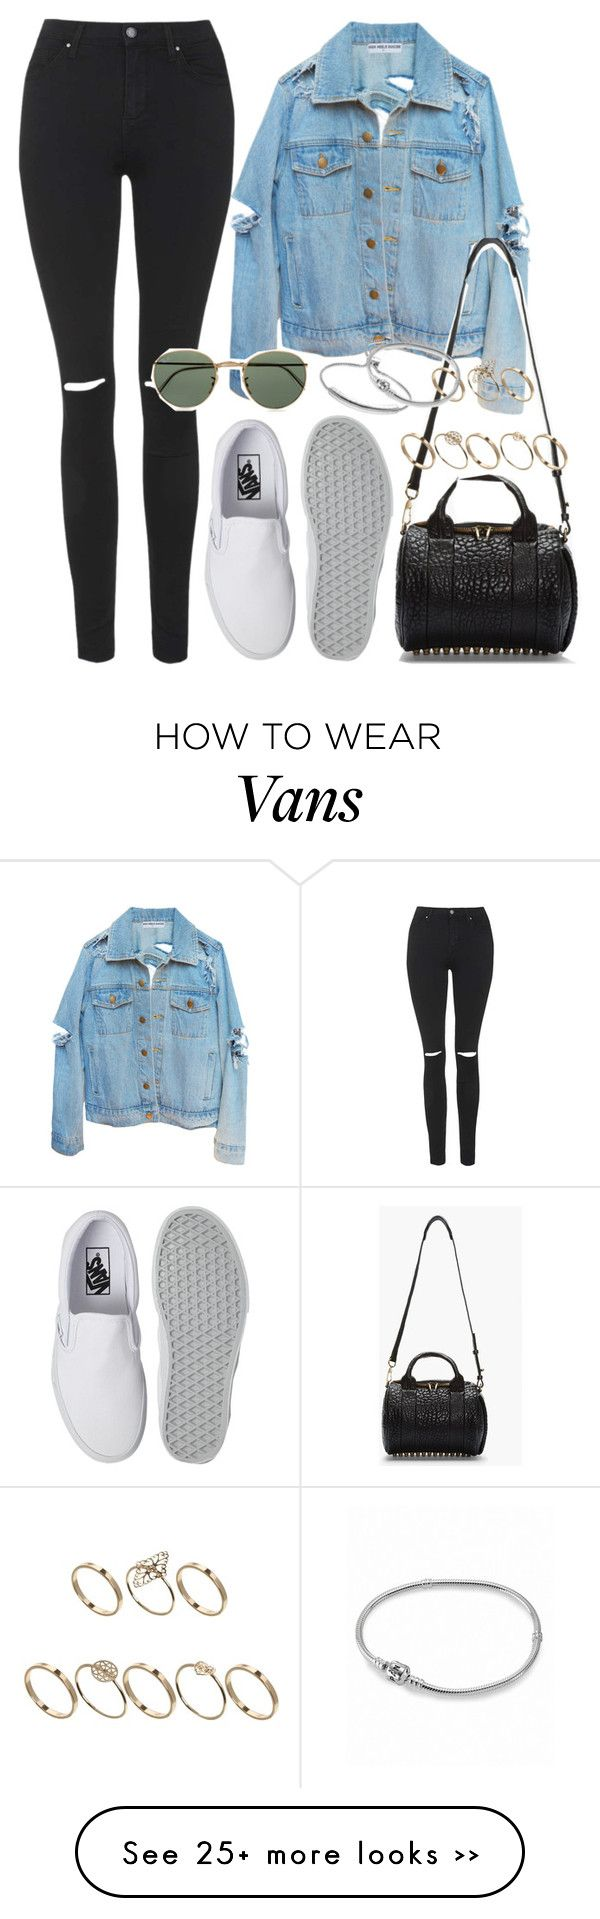 """Untitled #649"" by rguelsah on Polyvore"